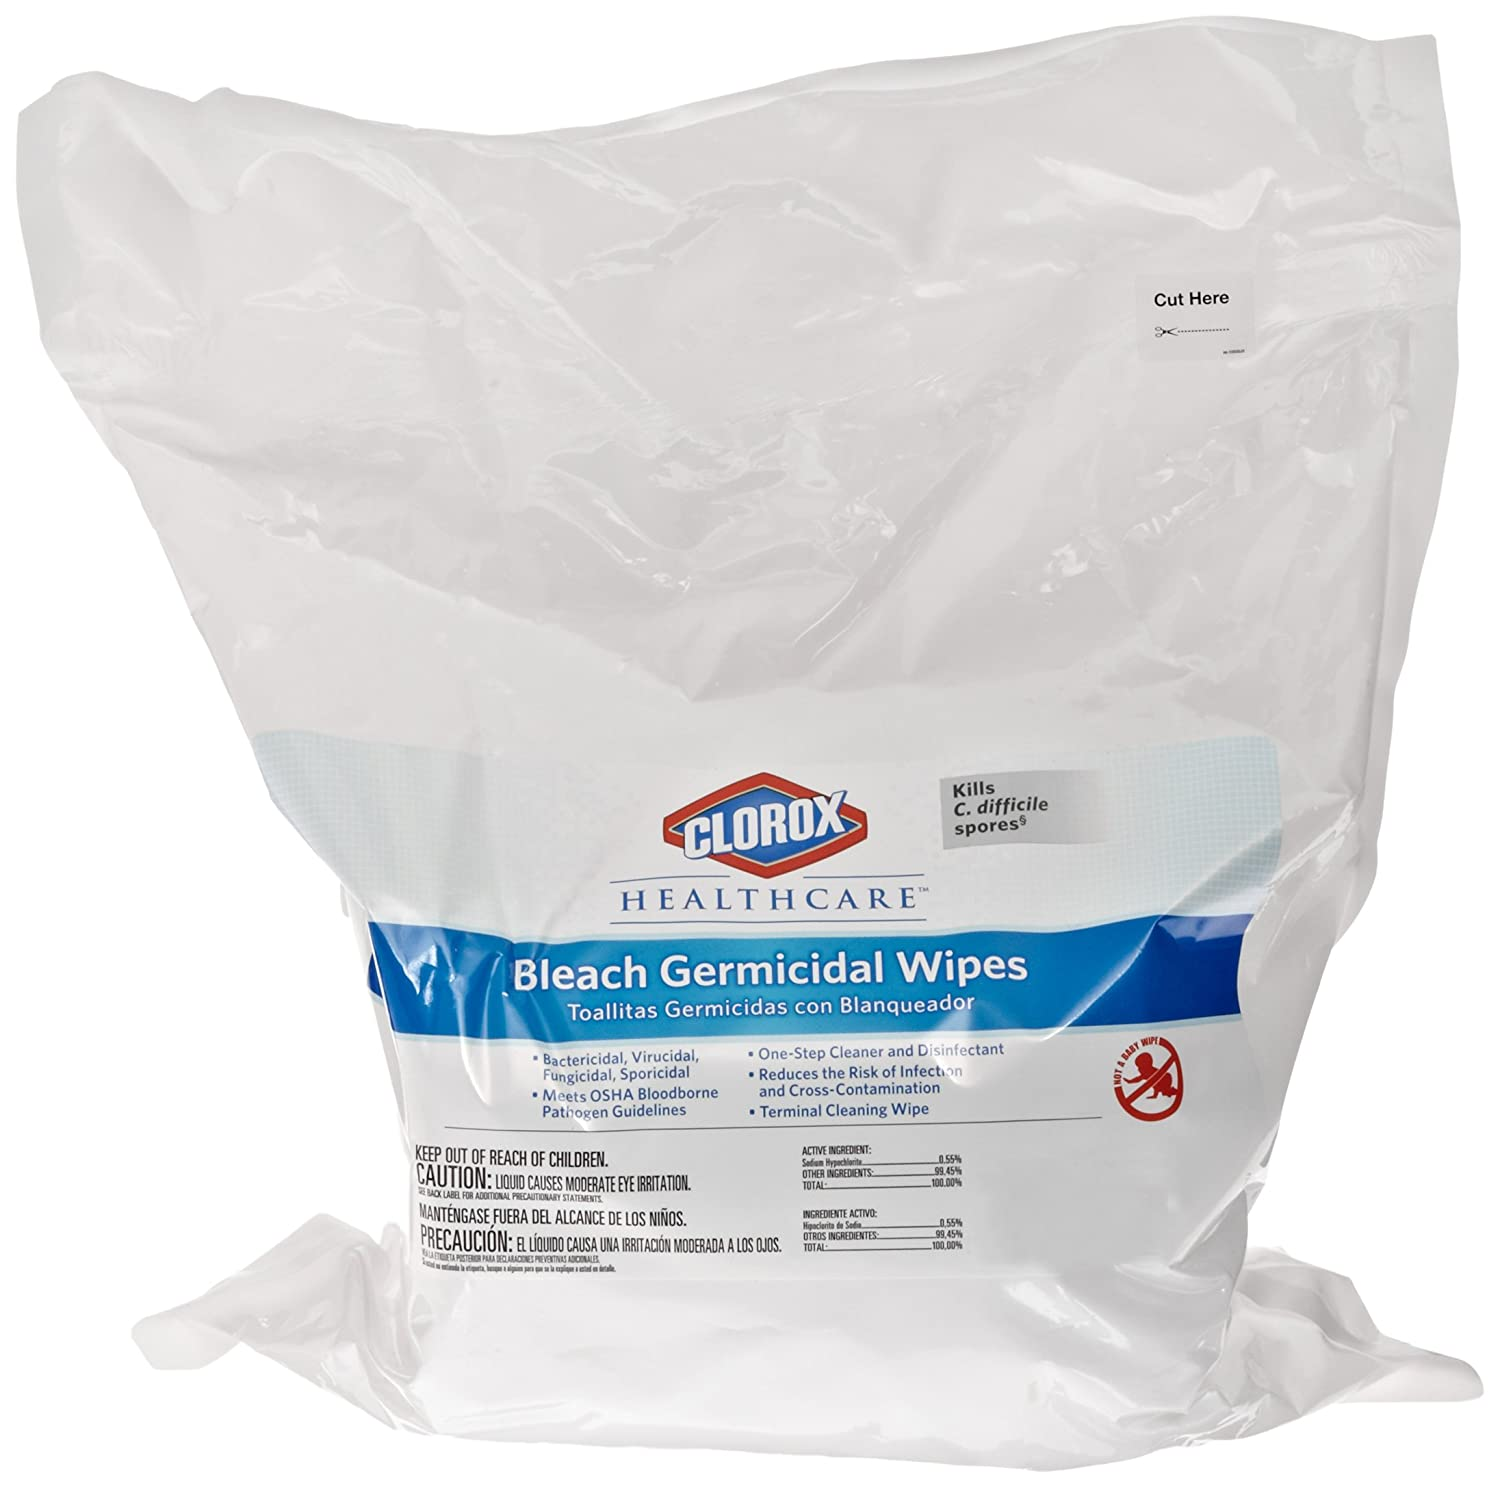 Amazon.com: Clorox 30359 Healthcare Bleach Germicidal Wipe, Refill (110 Count): Industrial & Scientific